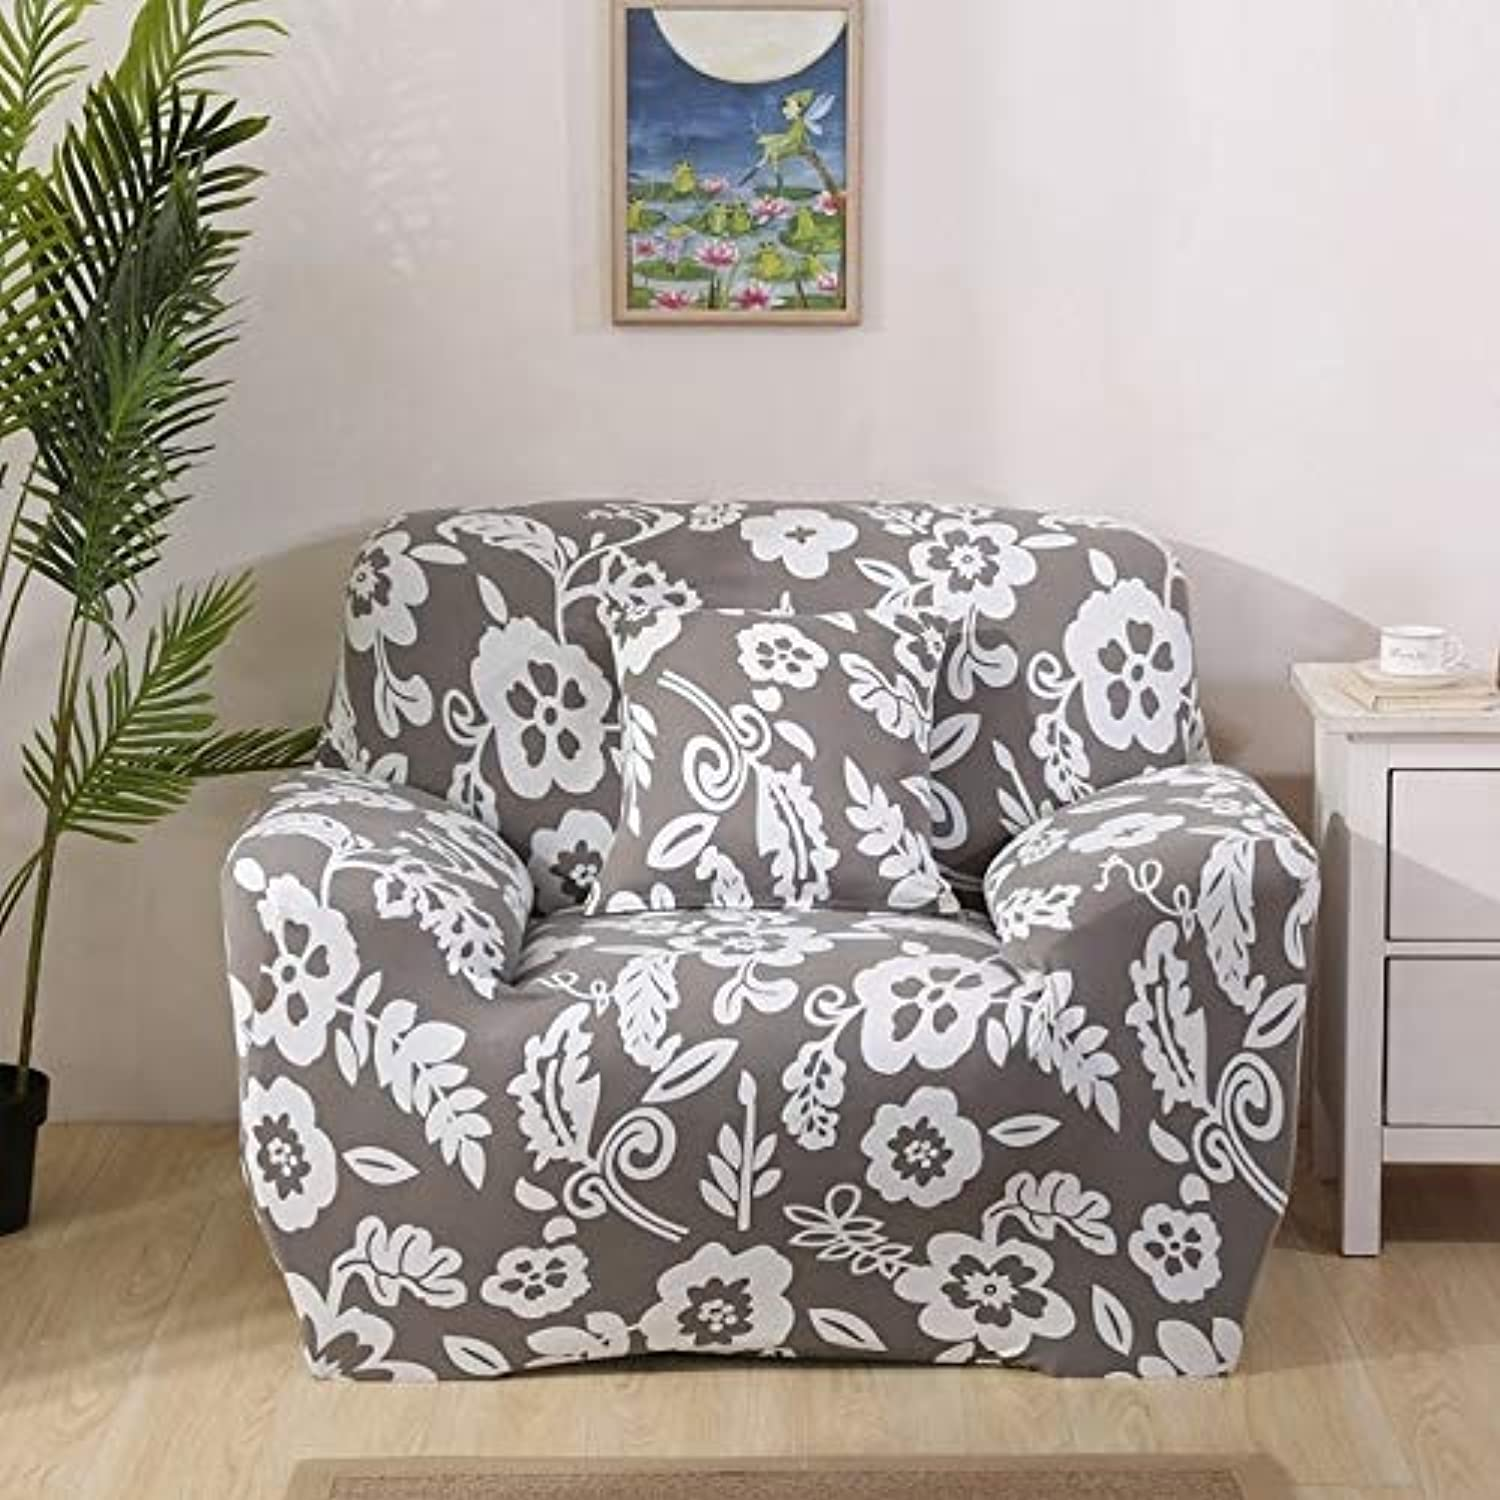 Slipcovers 24 colors Sofa Cover Elastic Single Two Three Four-Seater Spandex Stretch Sofa Cover Funda Sofa Couch Cover 1pc   color 23, 3 Seater